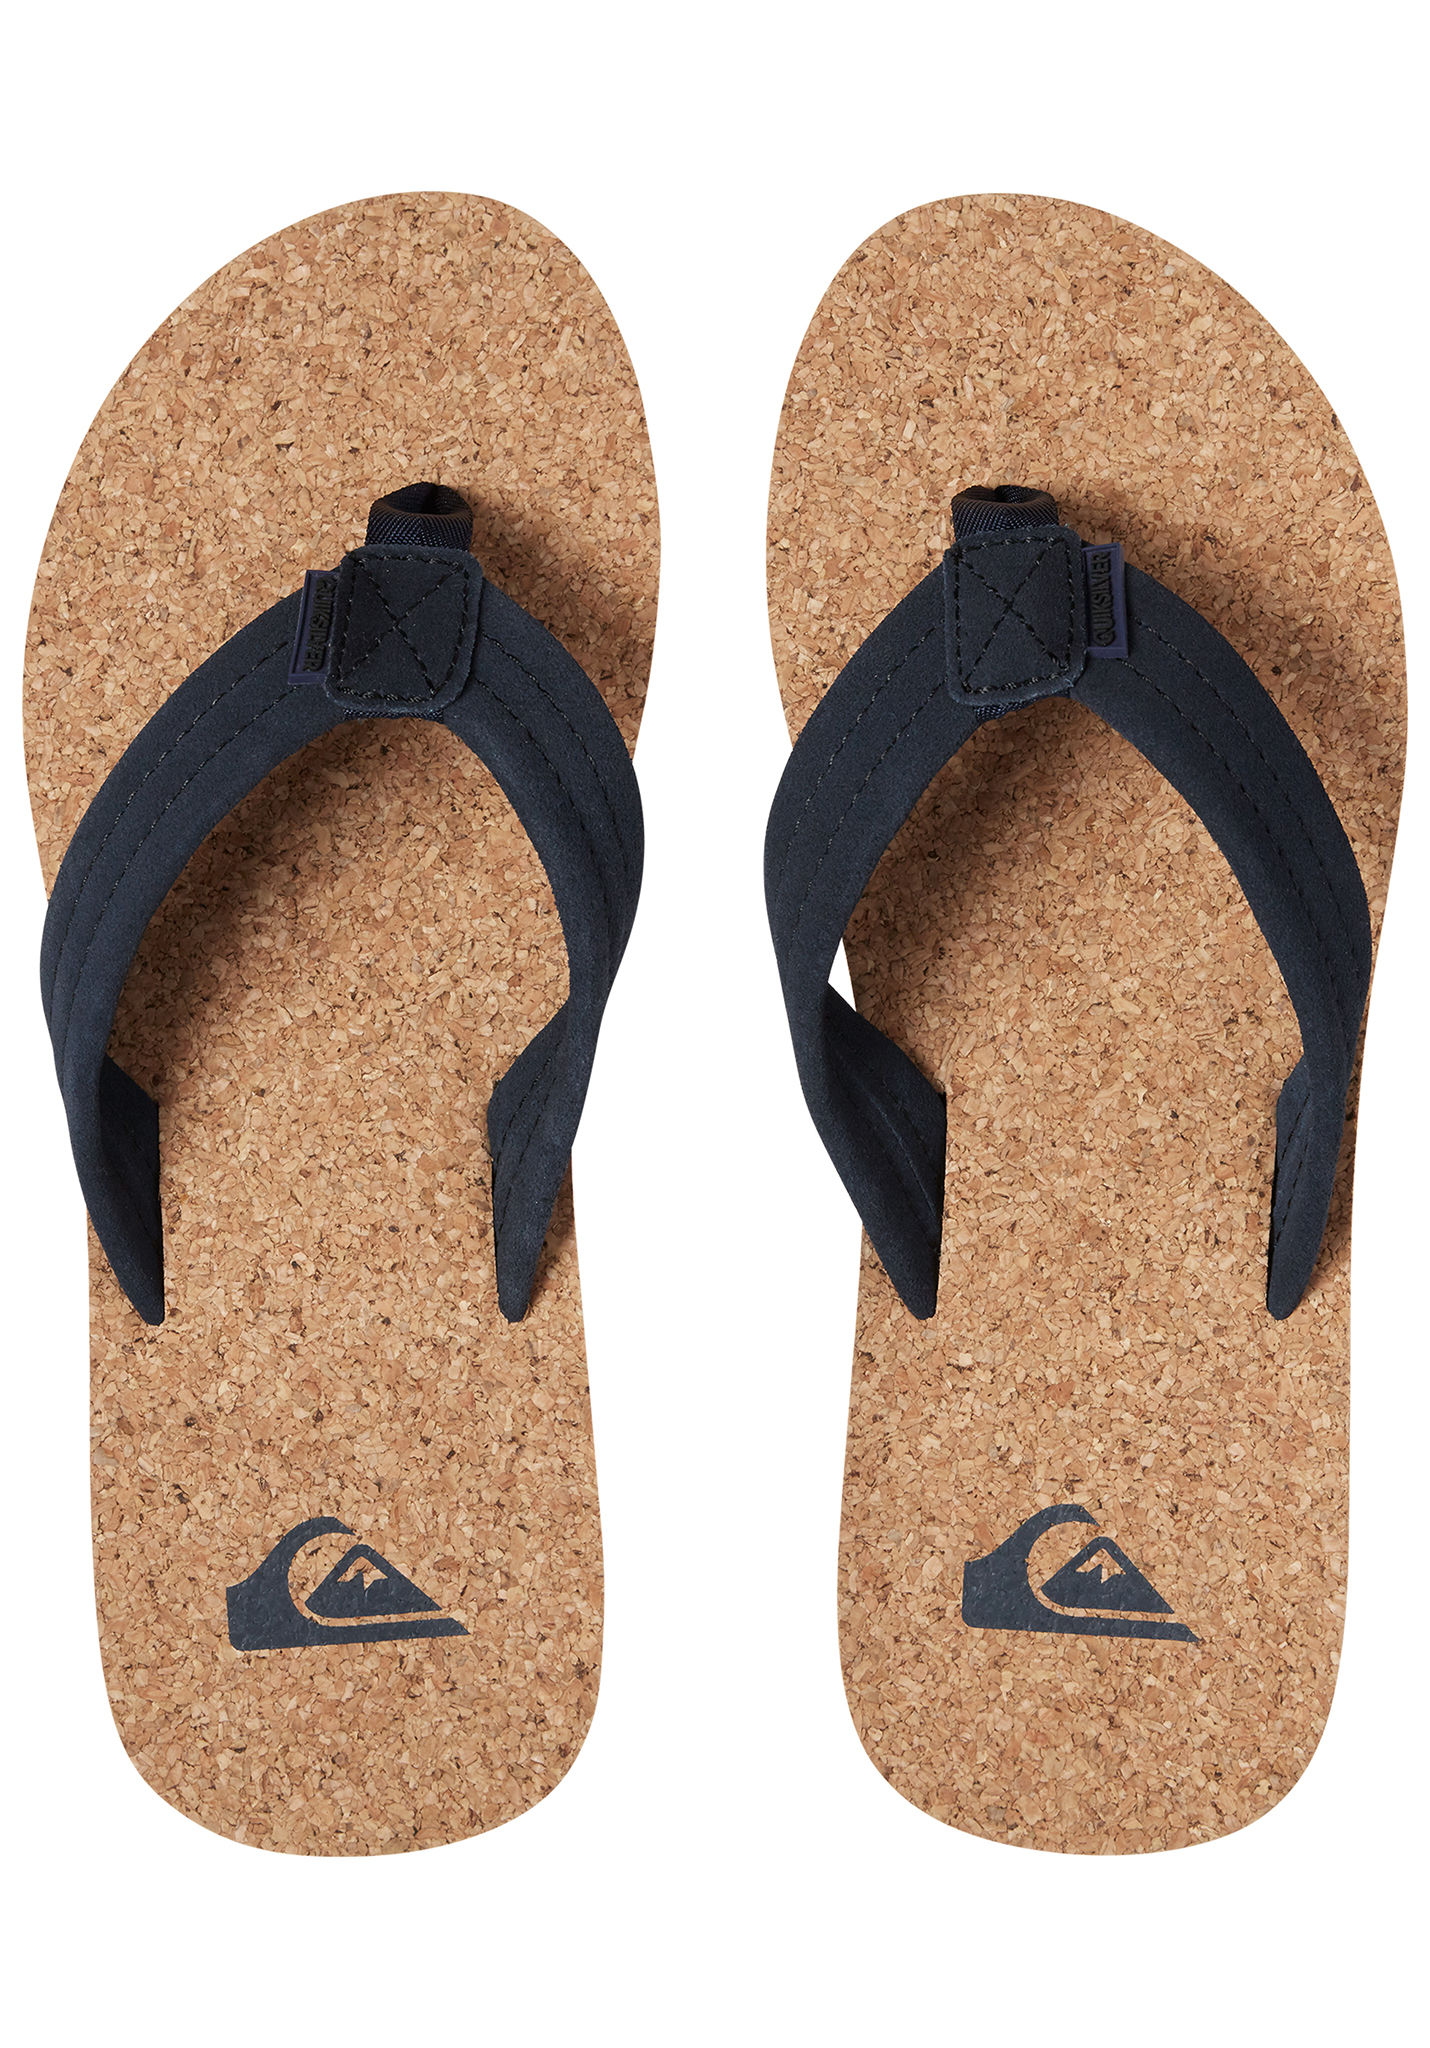 a48ae93c65b Quiksilver Carver Cork - Sandals for Men - Brown - Planet Sports